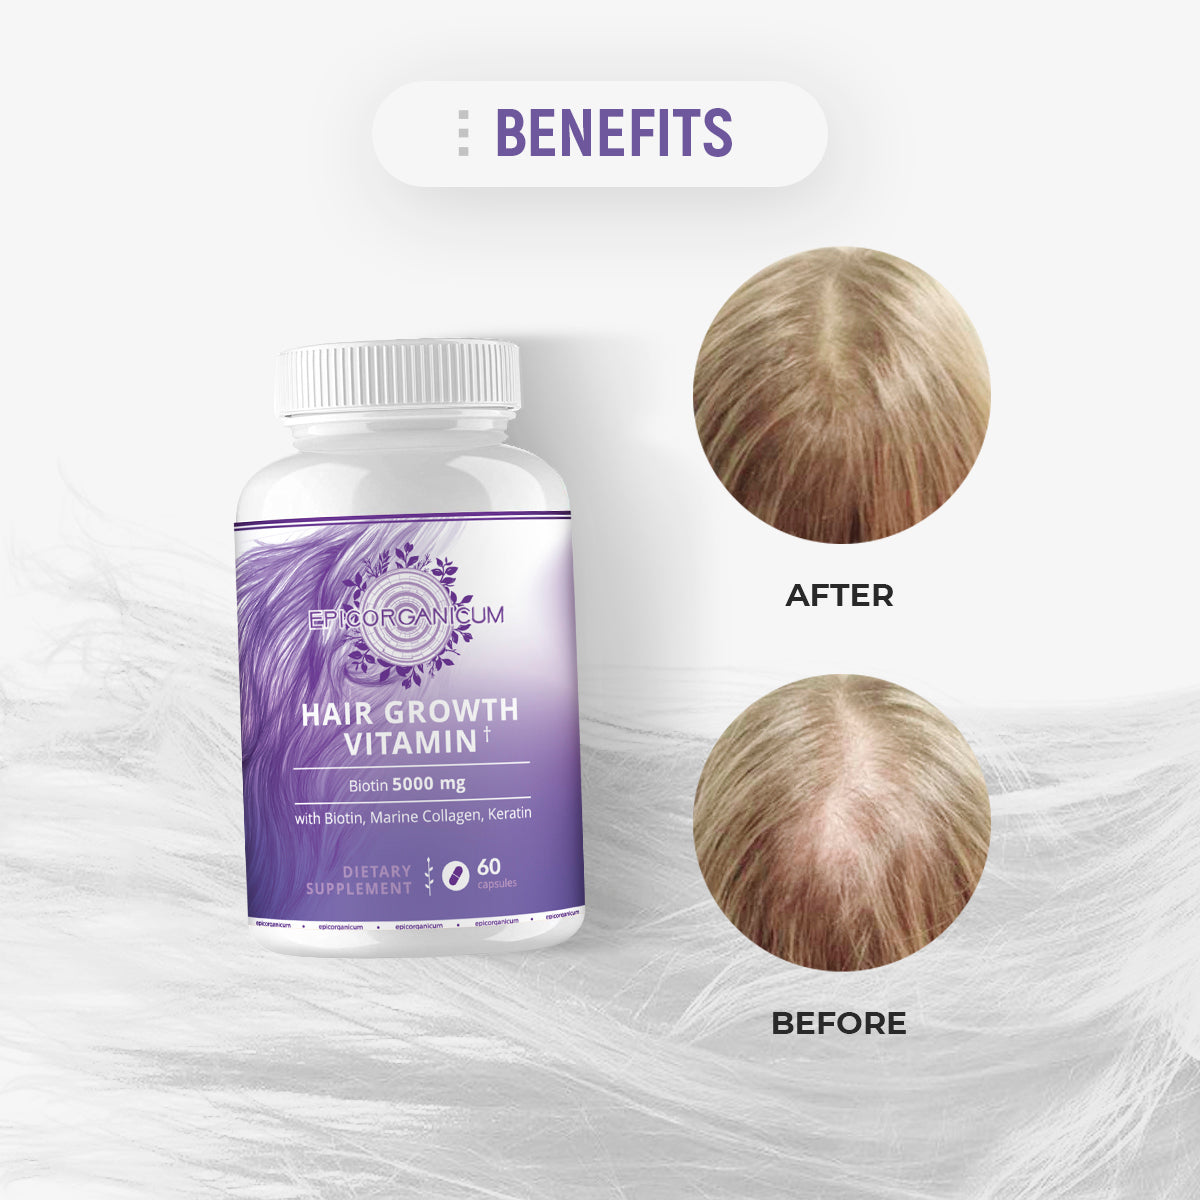 EpicOrganic Hair Growth Vitamins With Biotin. Supplement For Women & Men. Faster Hair Growth, Reduced Hair Loss